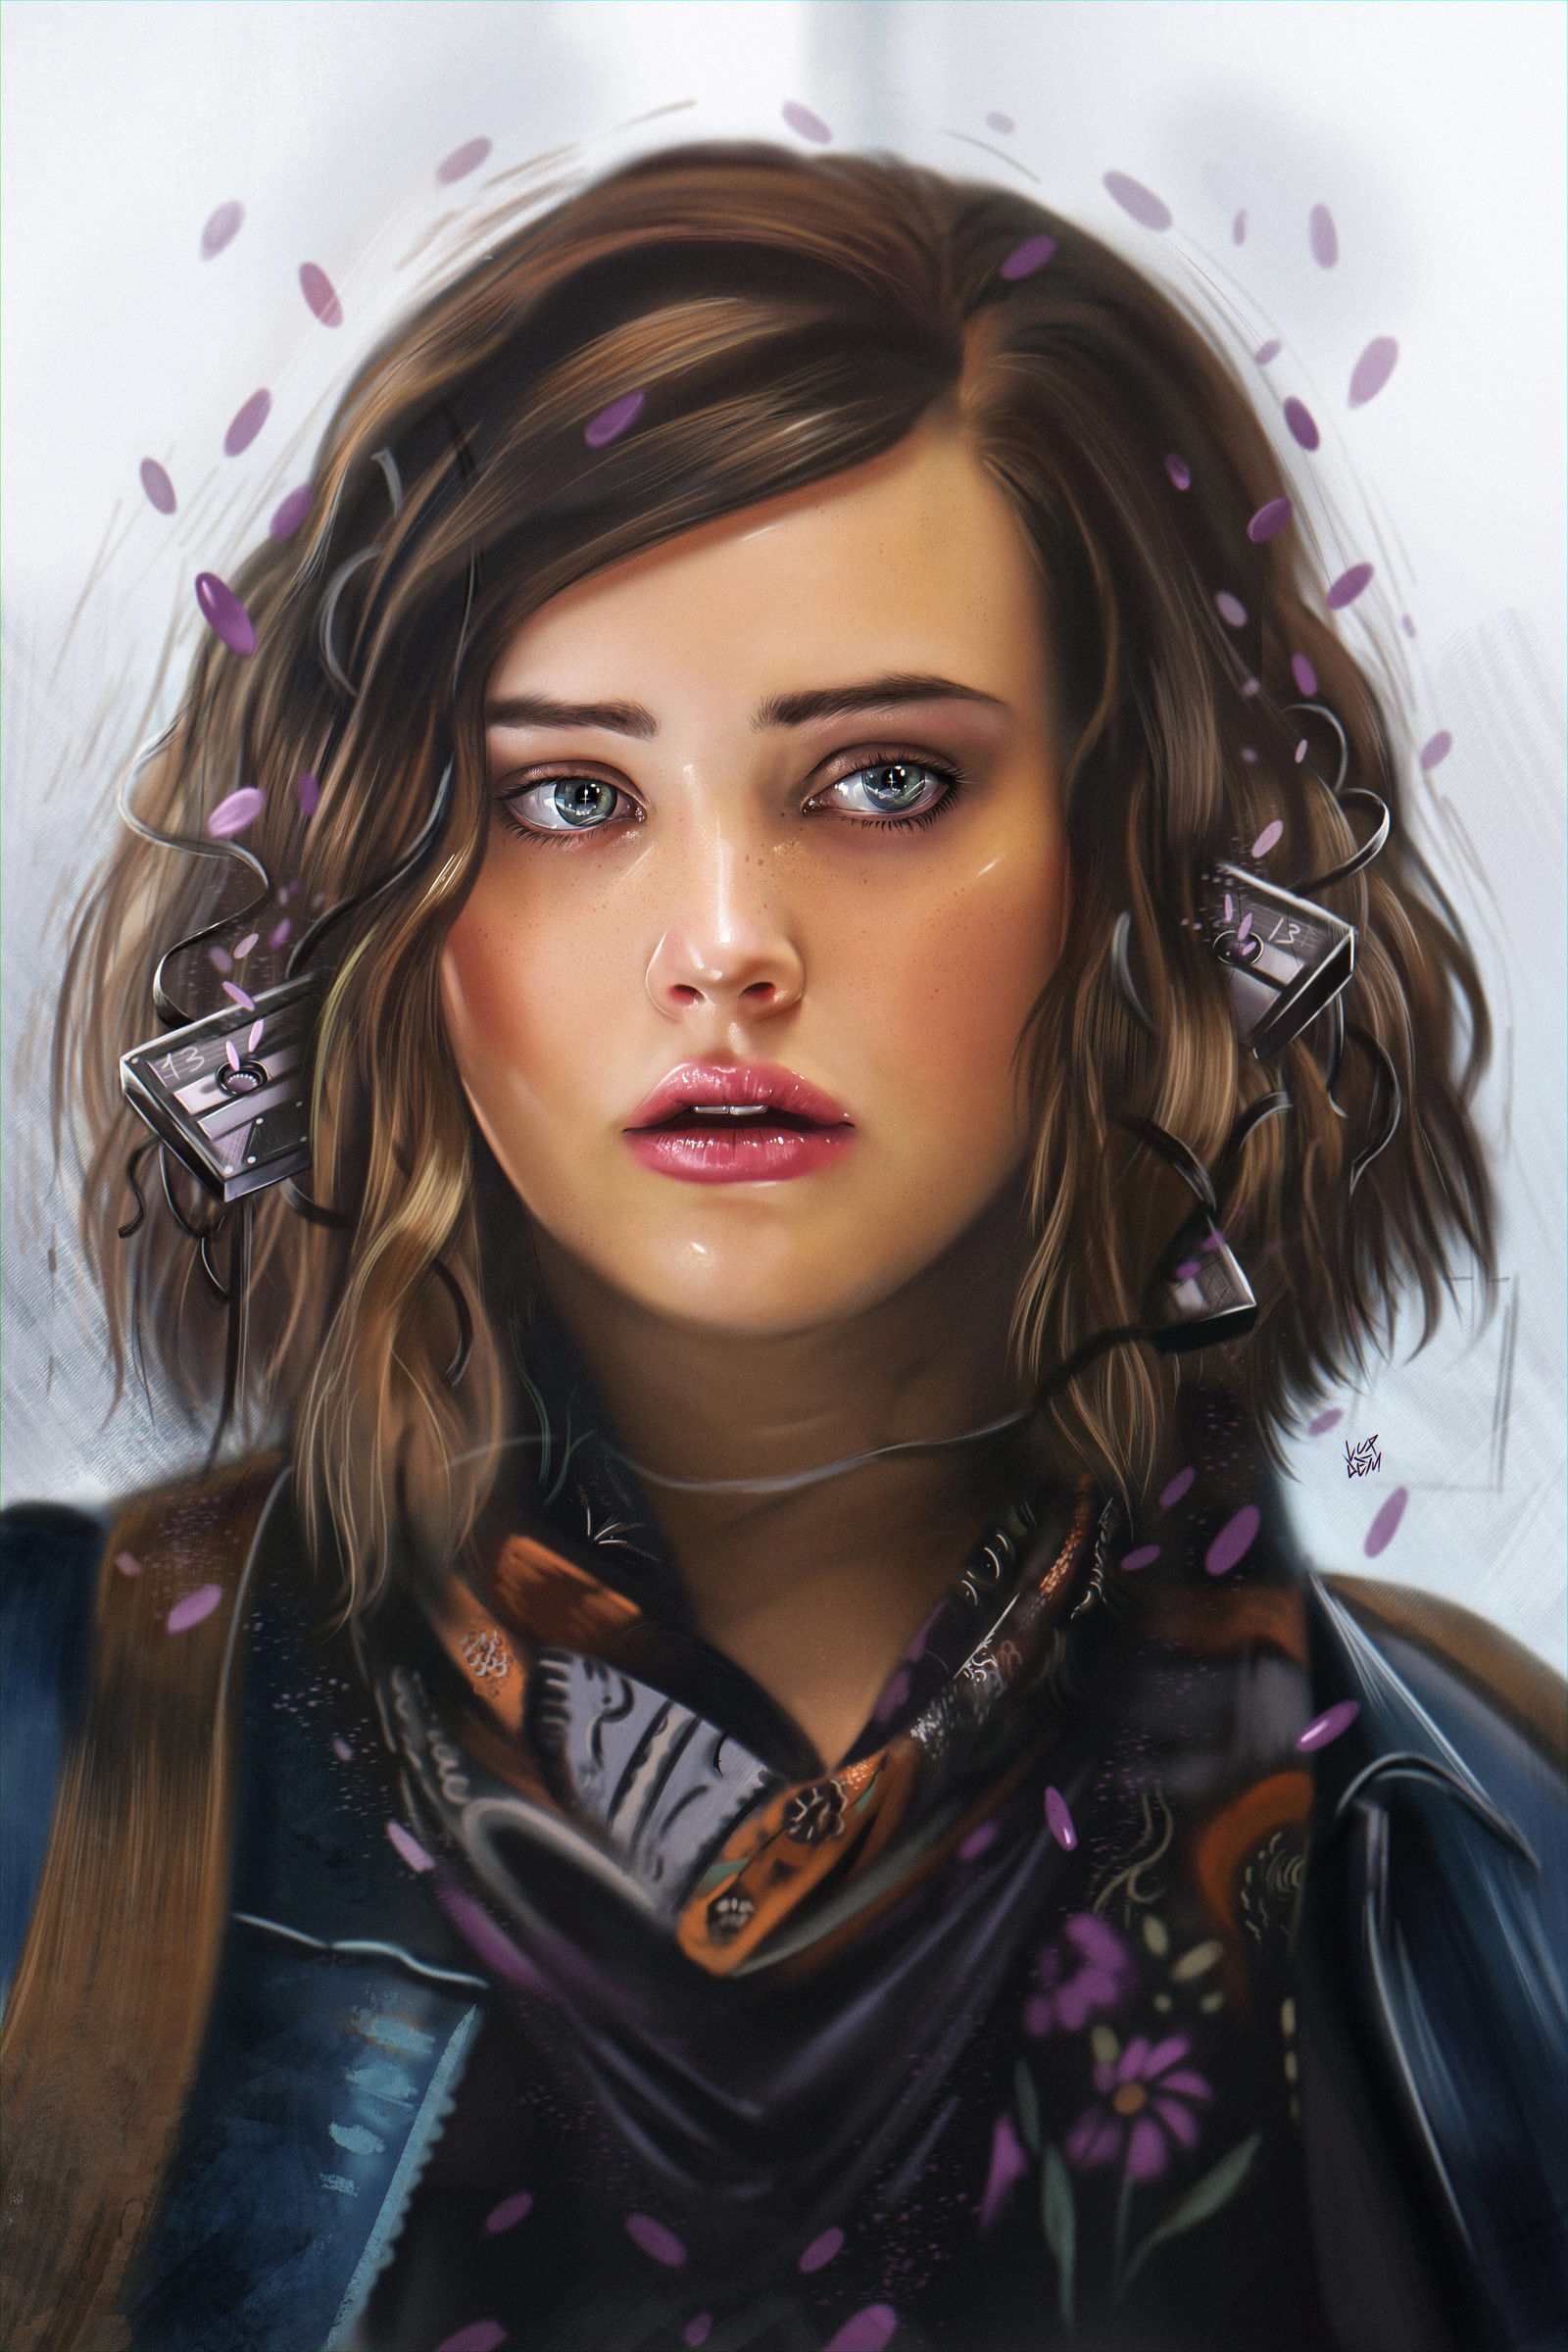 Yasar vurdem 13 reasons why netflix tv series illustration by vurdem dbd8qyl